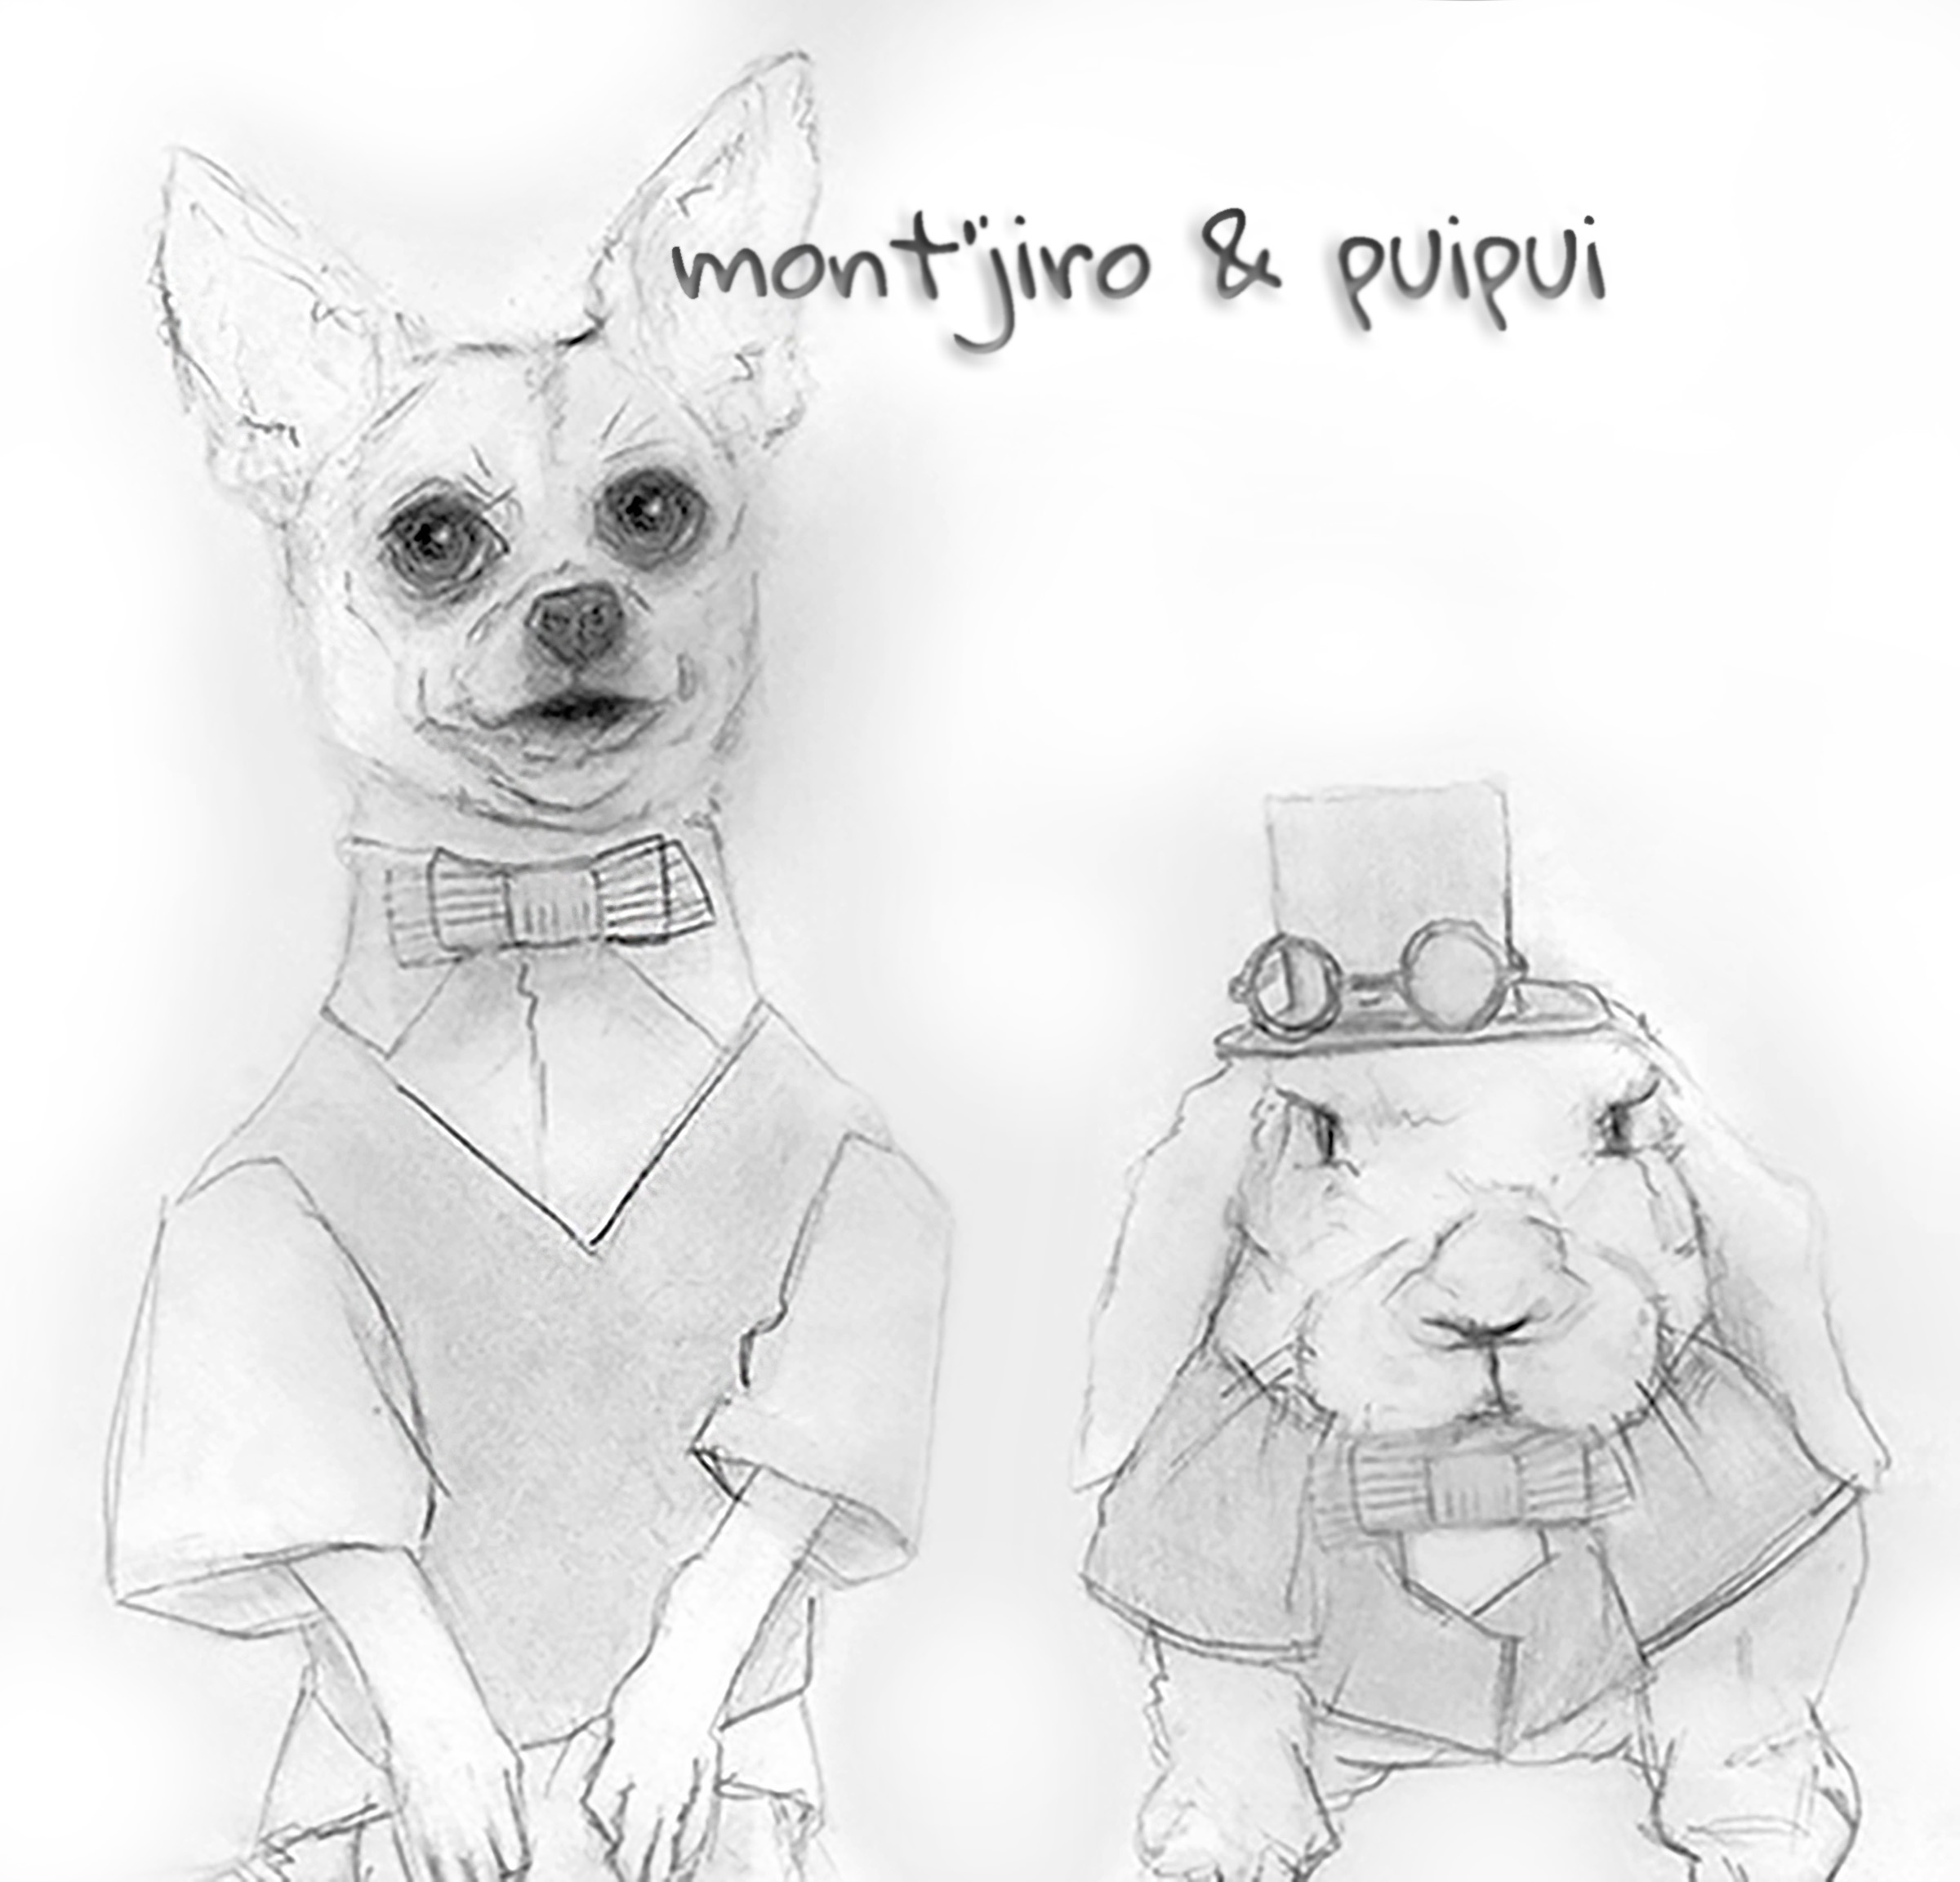 mont'jiro the chihuahua & puipui the rabbit - cute circus creature couture follow feature